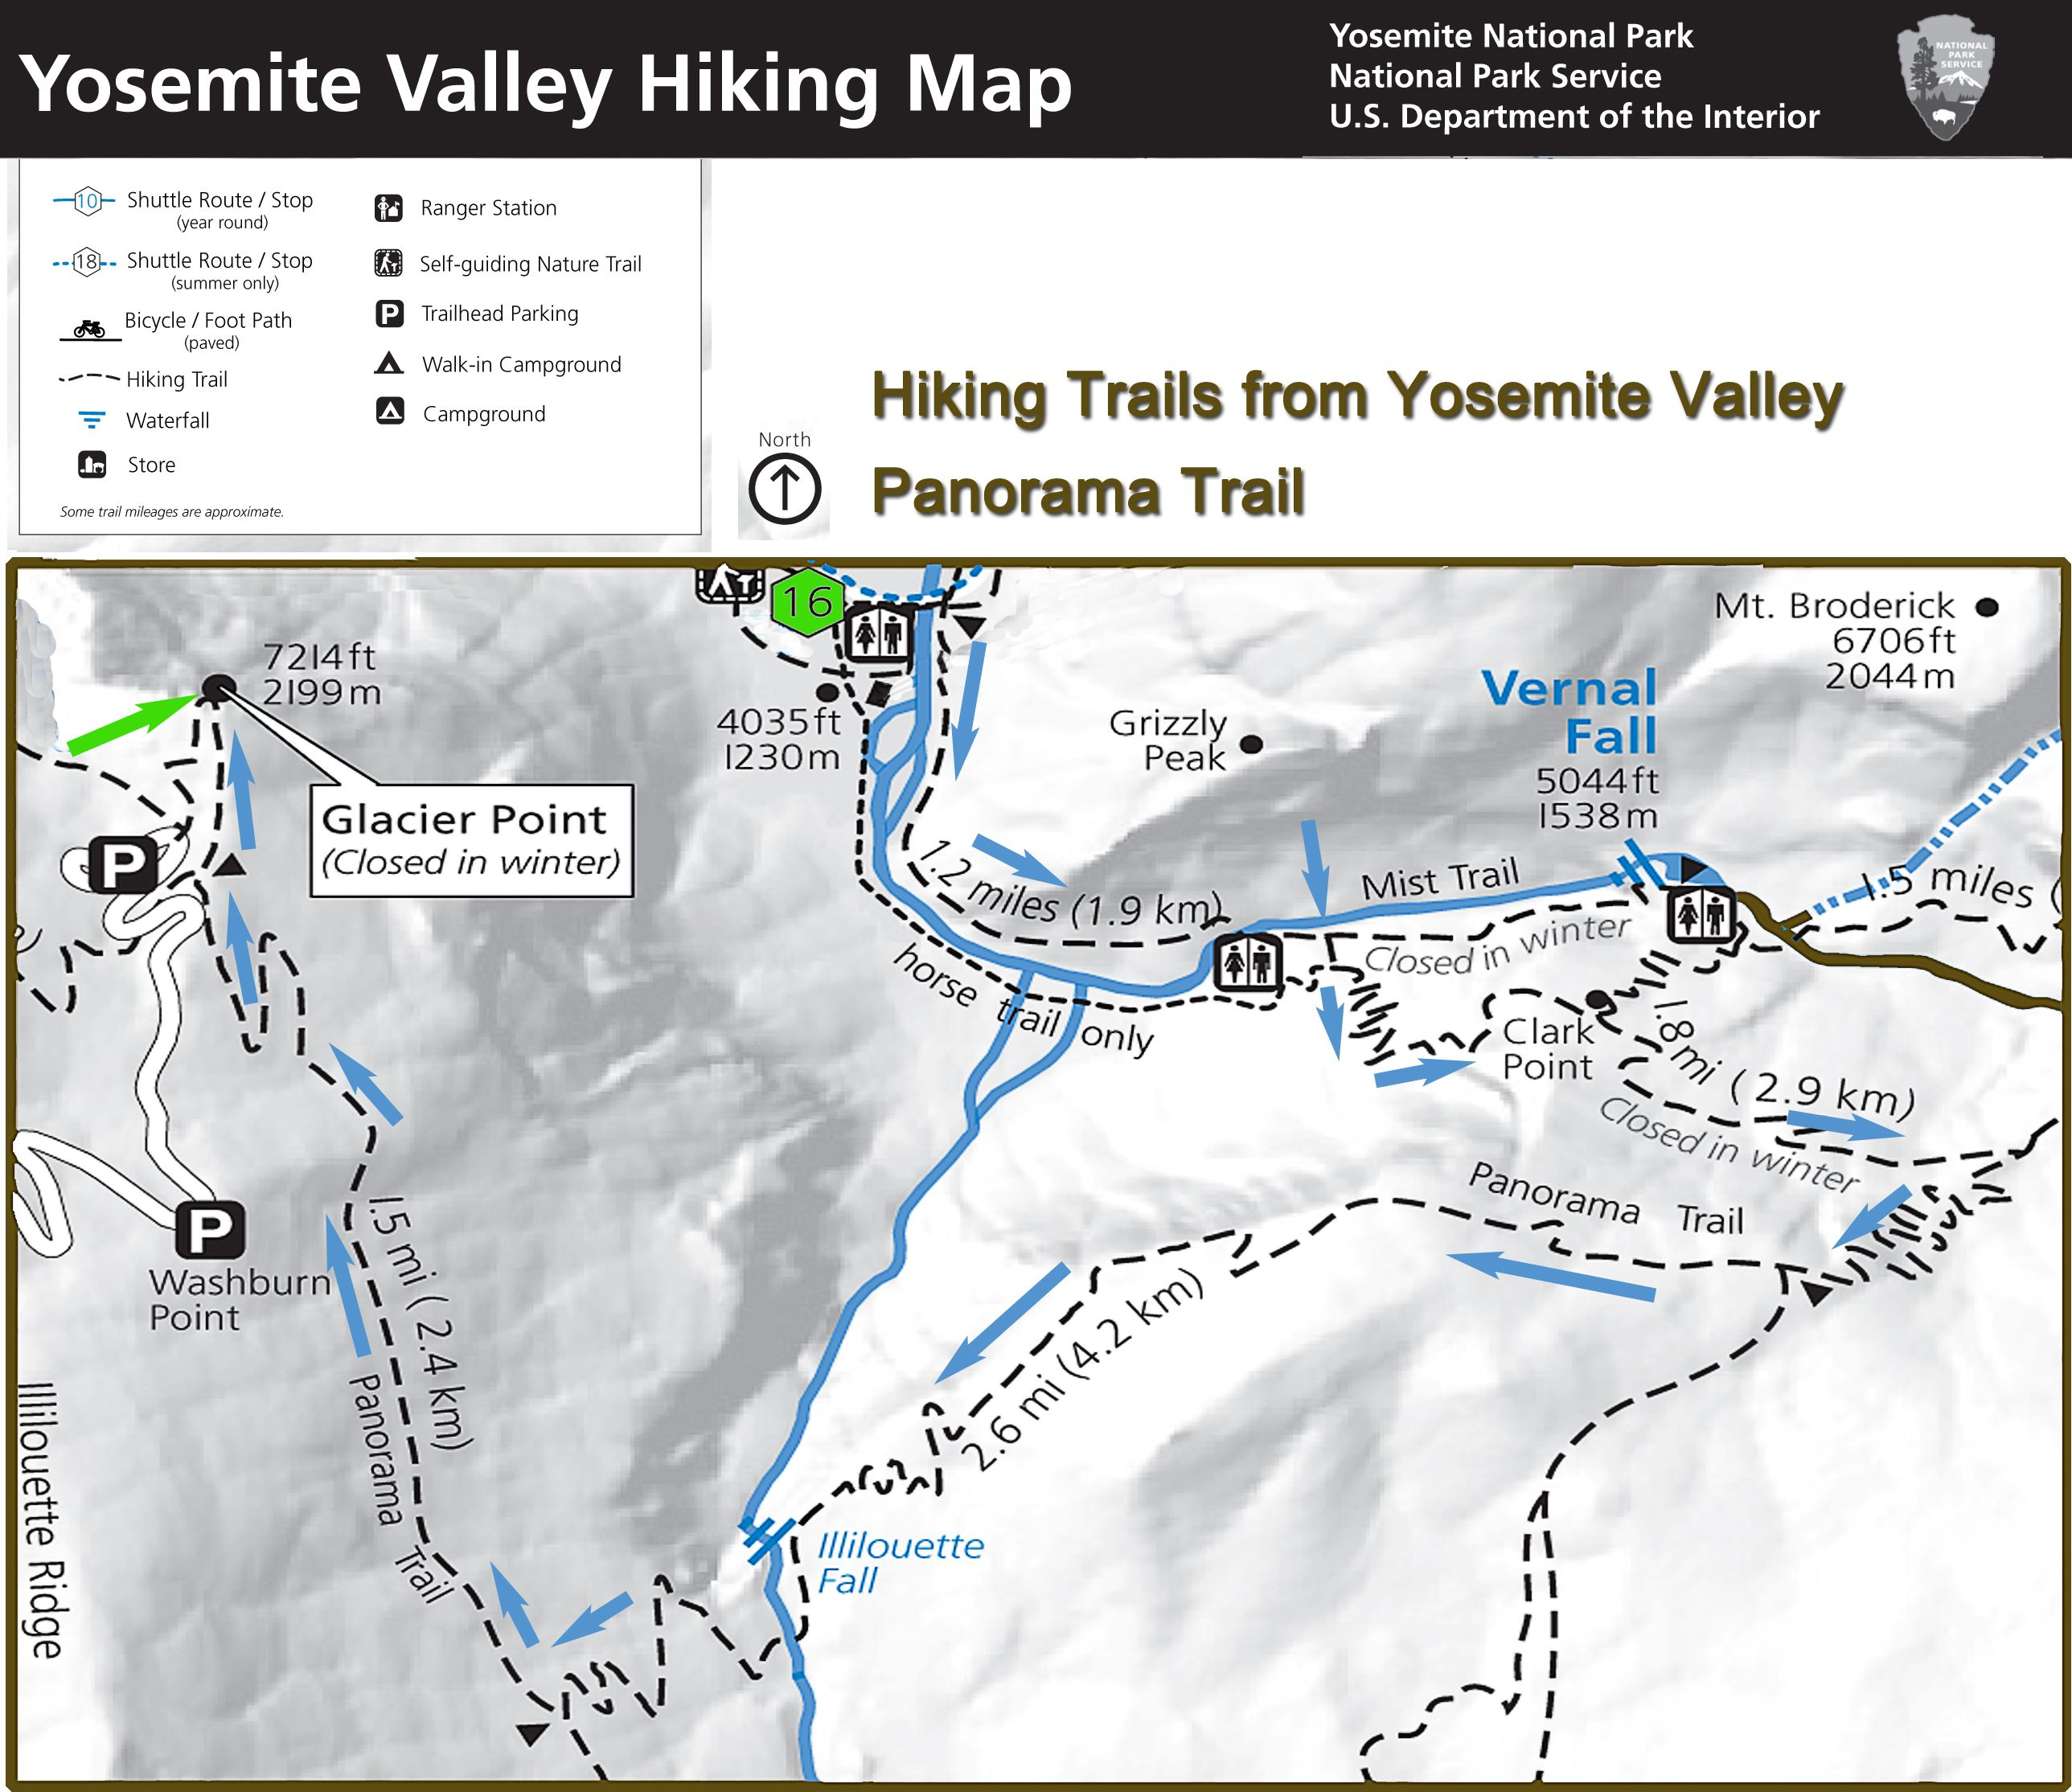 Yosemite Hiking Map Mirror Lake trail The trail starts in the